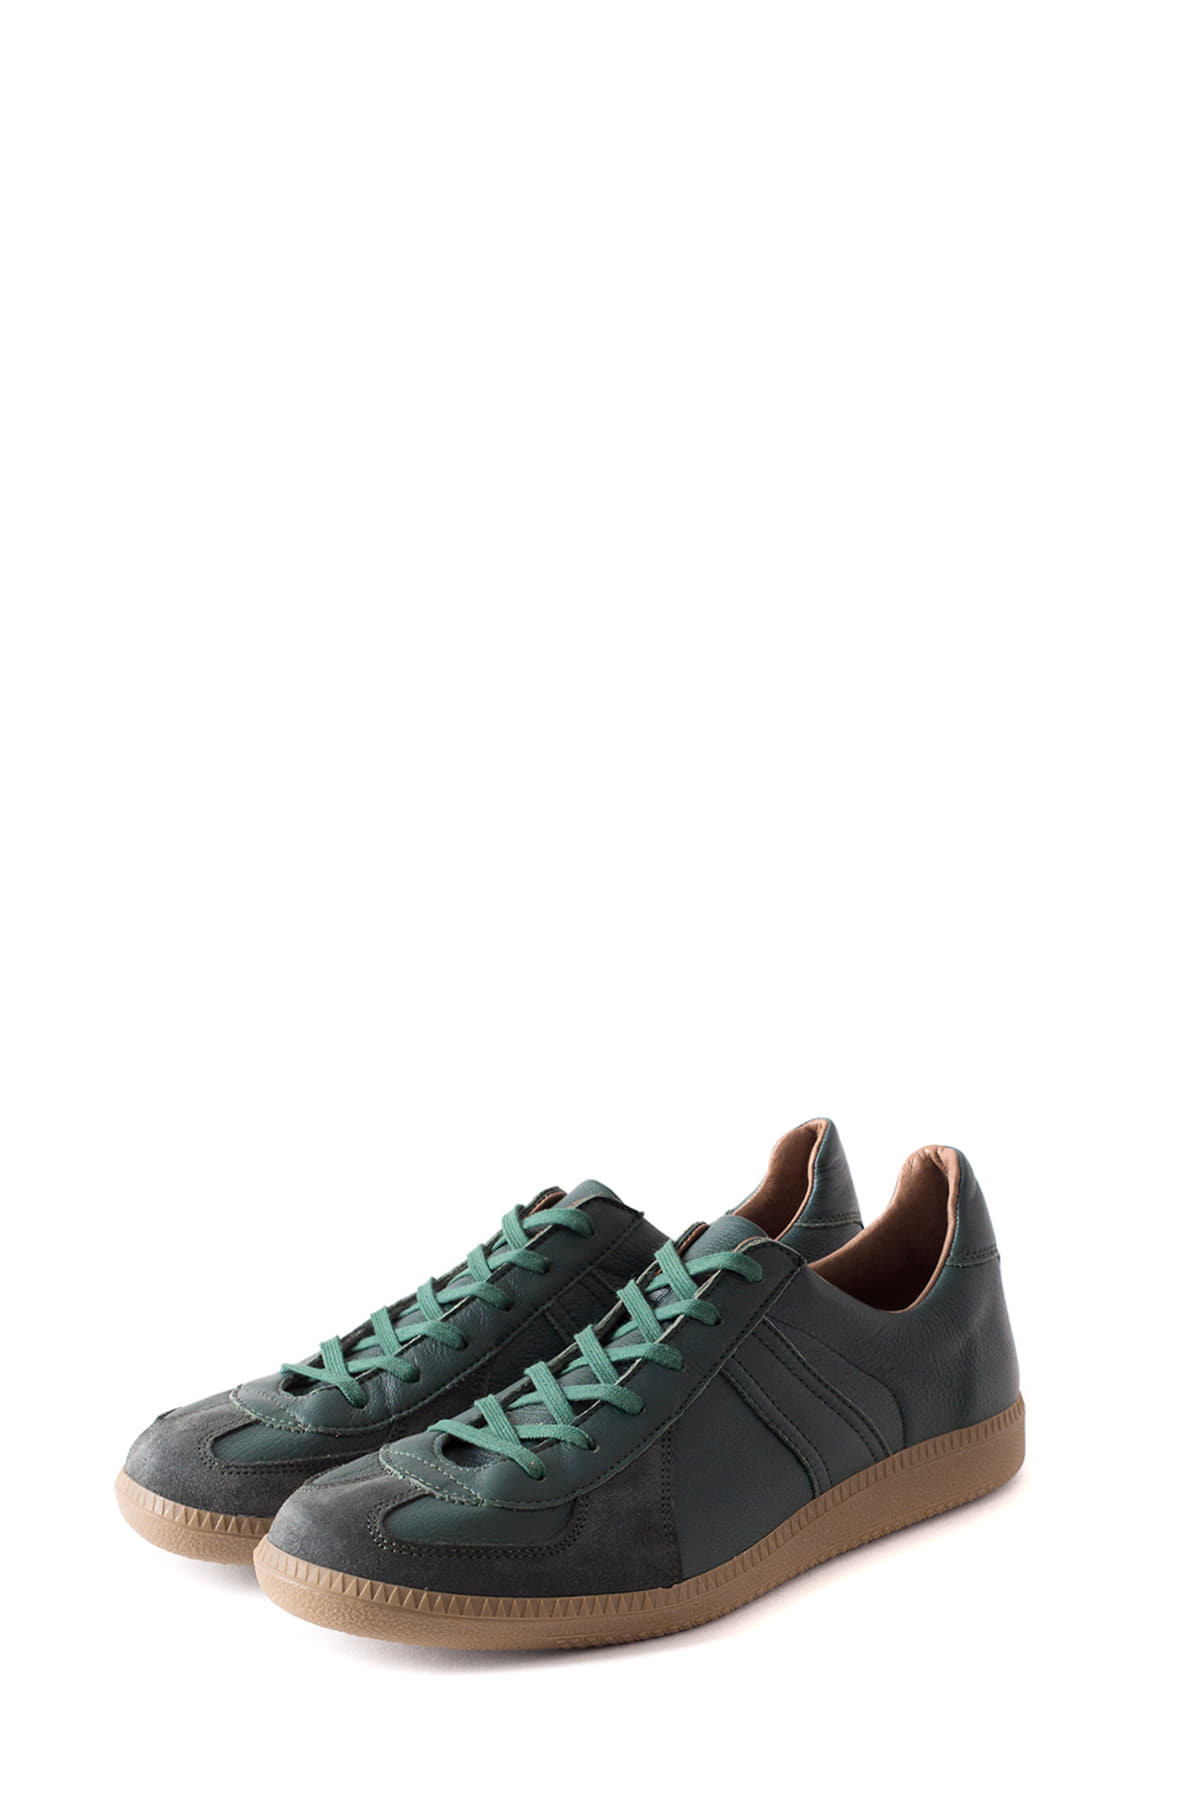 REPRODUCTION OF FOUND : German Military Trainer (Dark Green)